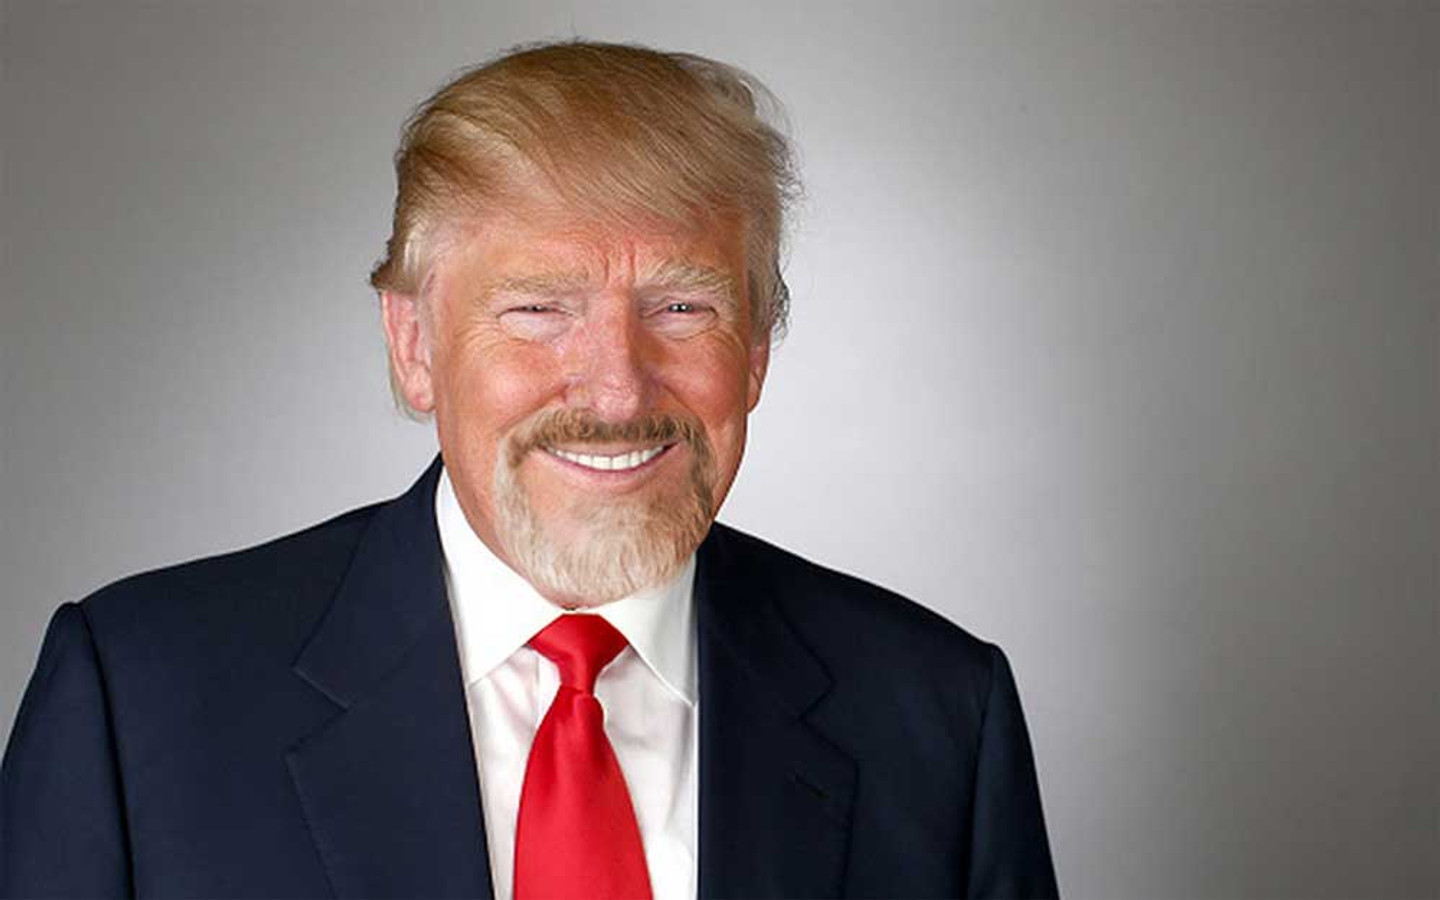 Presidential Pogonophilia: Beards in the 2016 Election?